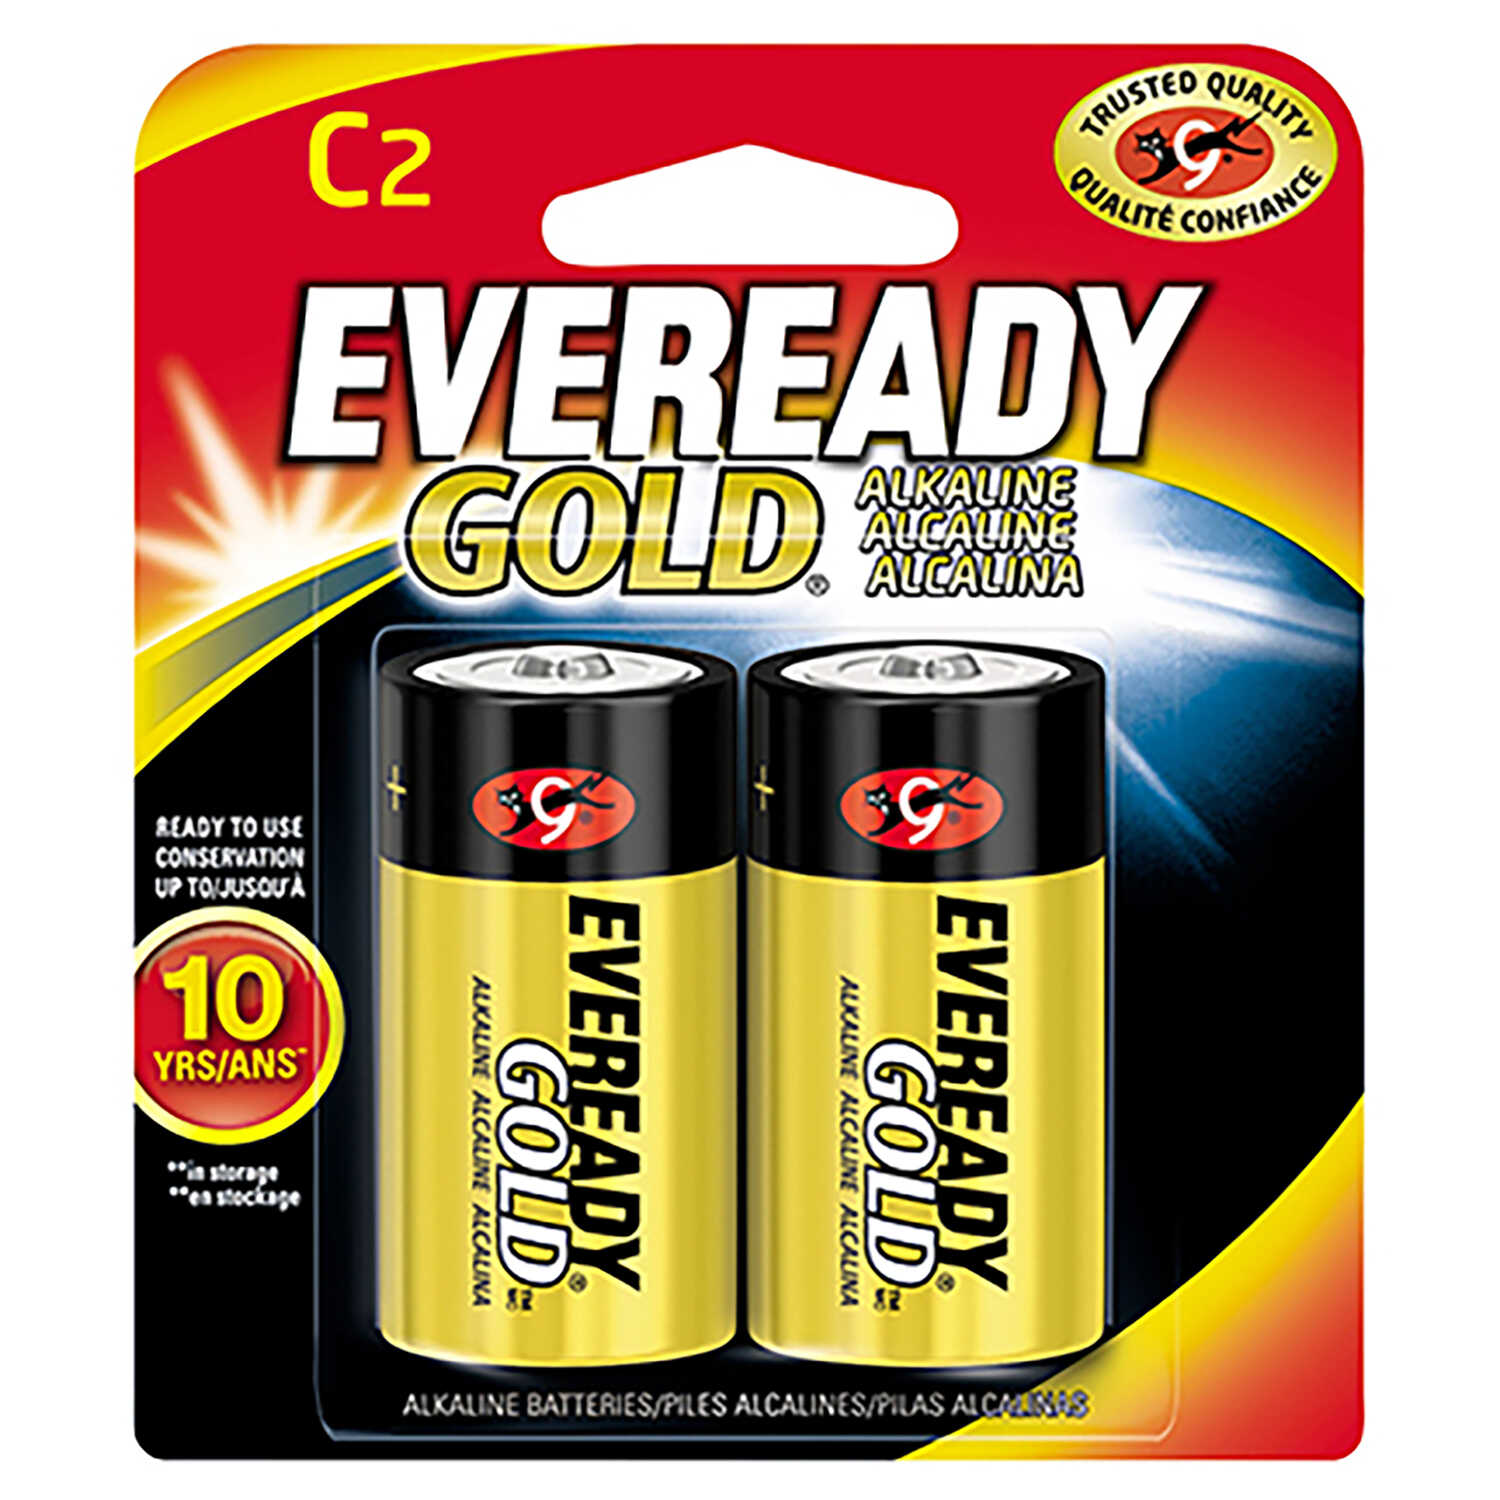 Eveready  Gold  C  Alkaline  Batteries  2 pk 1.5 volts Carded